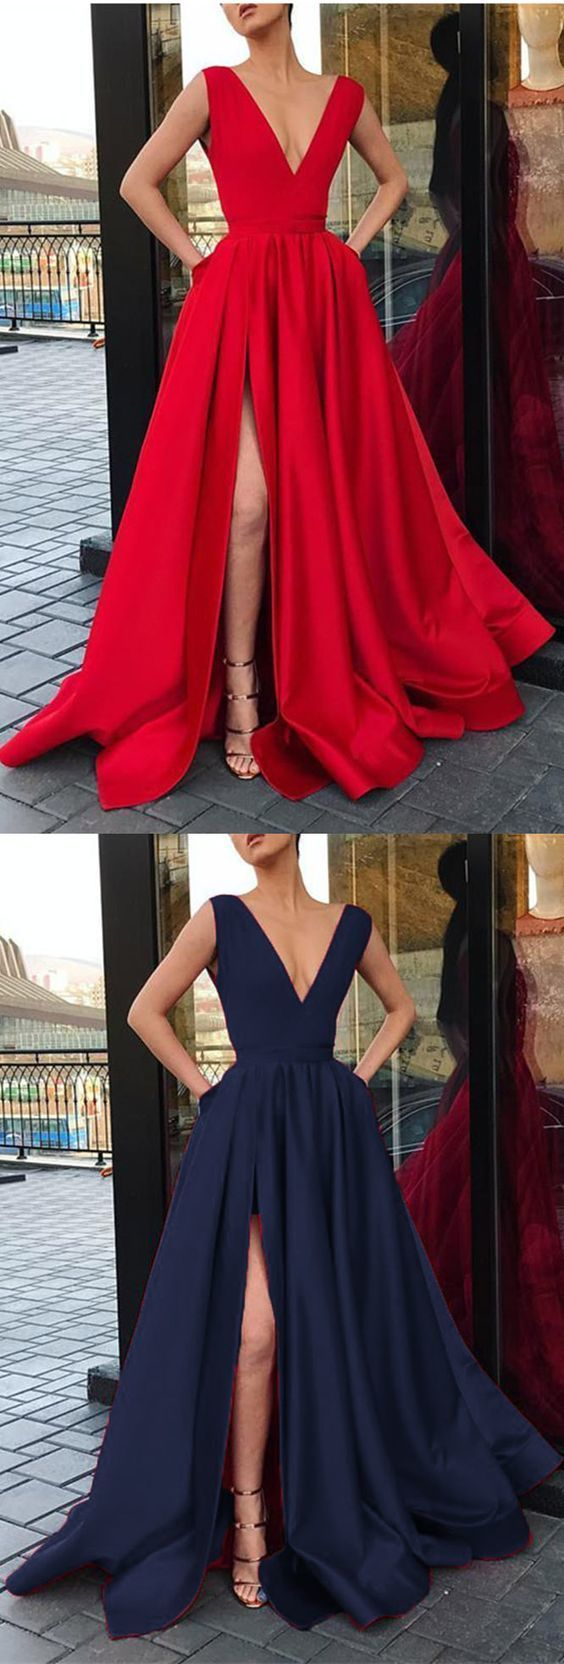 Elegant V neck Long Evening Party Dresses with Slit,Sexy Party Dress,Formal